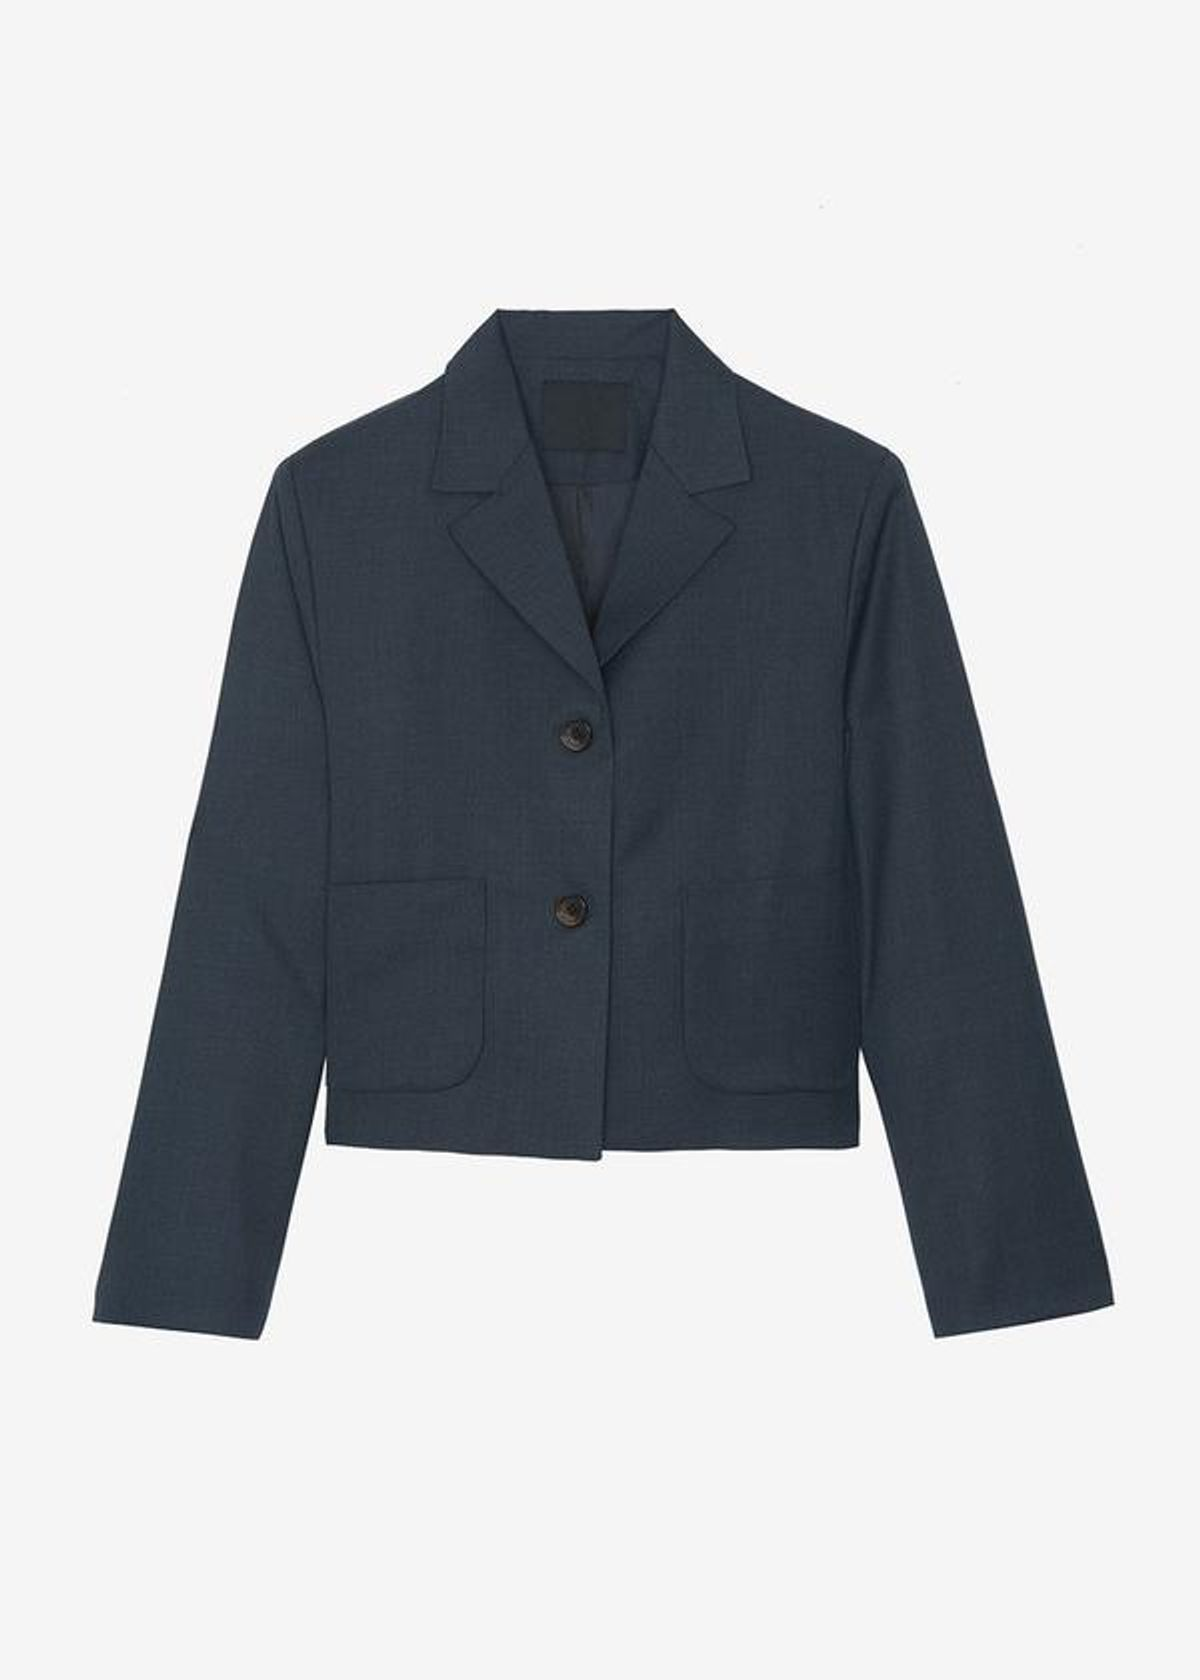 Cropped Suiting Jacket in Ink